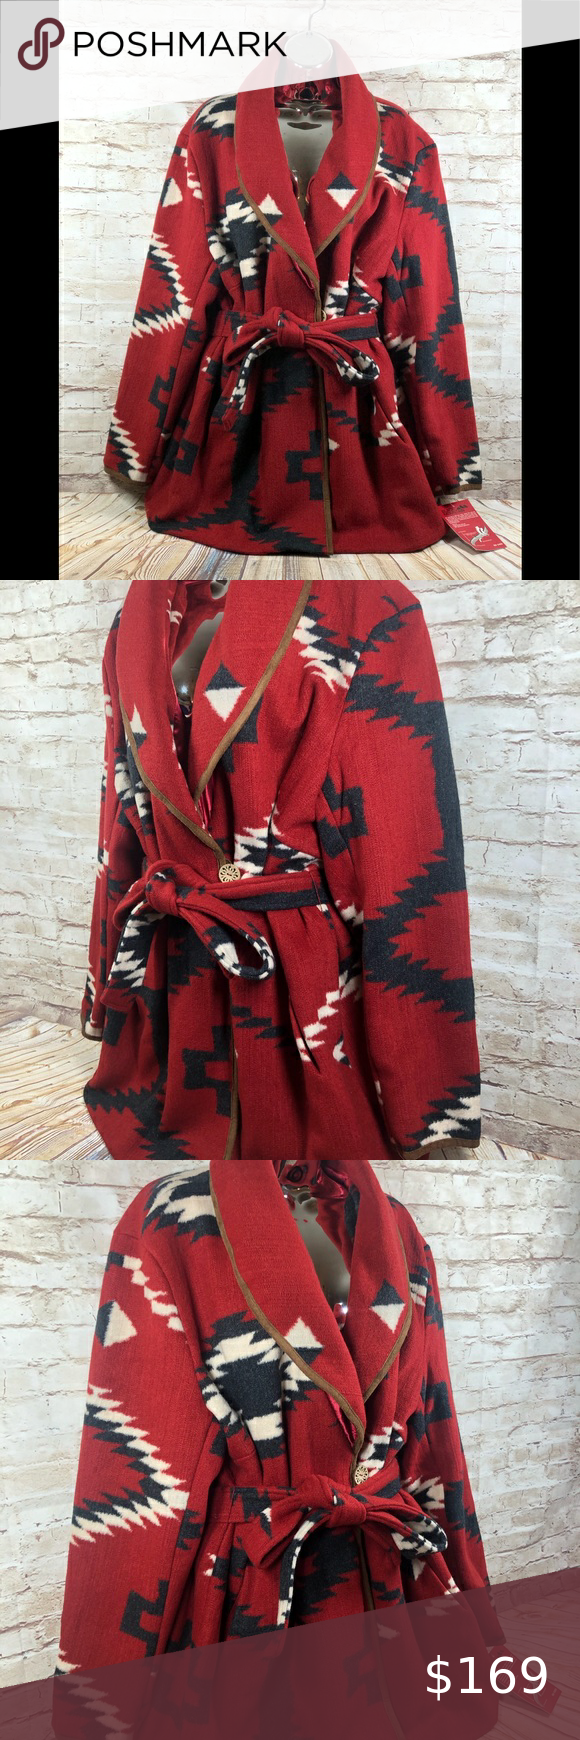 Black Mountain Western Aztec Blanket Coat Sz 1x Really Nice Great Color And Print Brick Red Black White Sz 1x Blanket Coat Clothes Design Jackets For Women [ 1740 x 580 Pixel ]